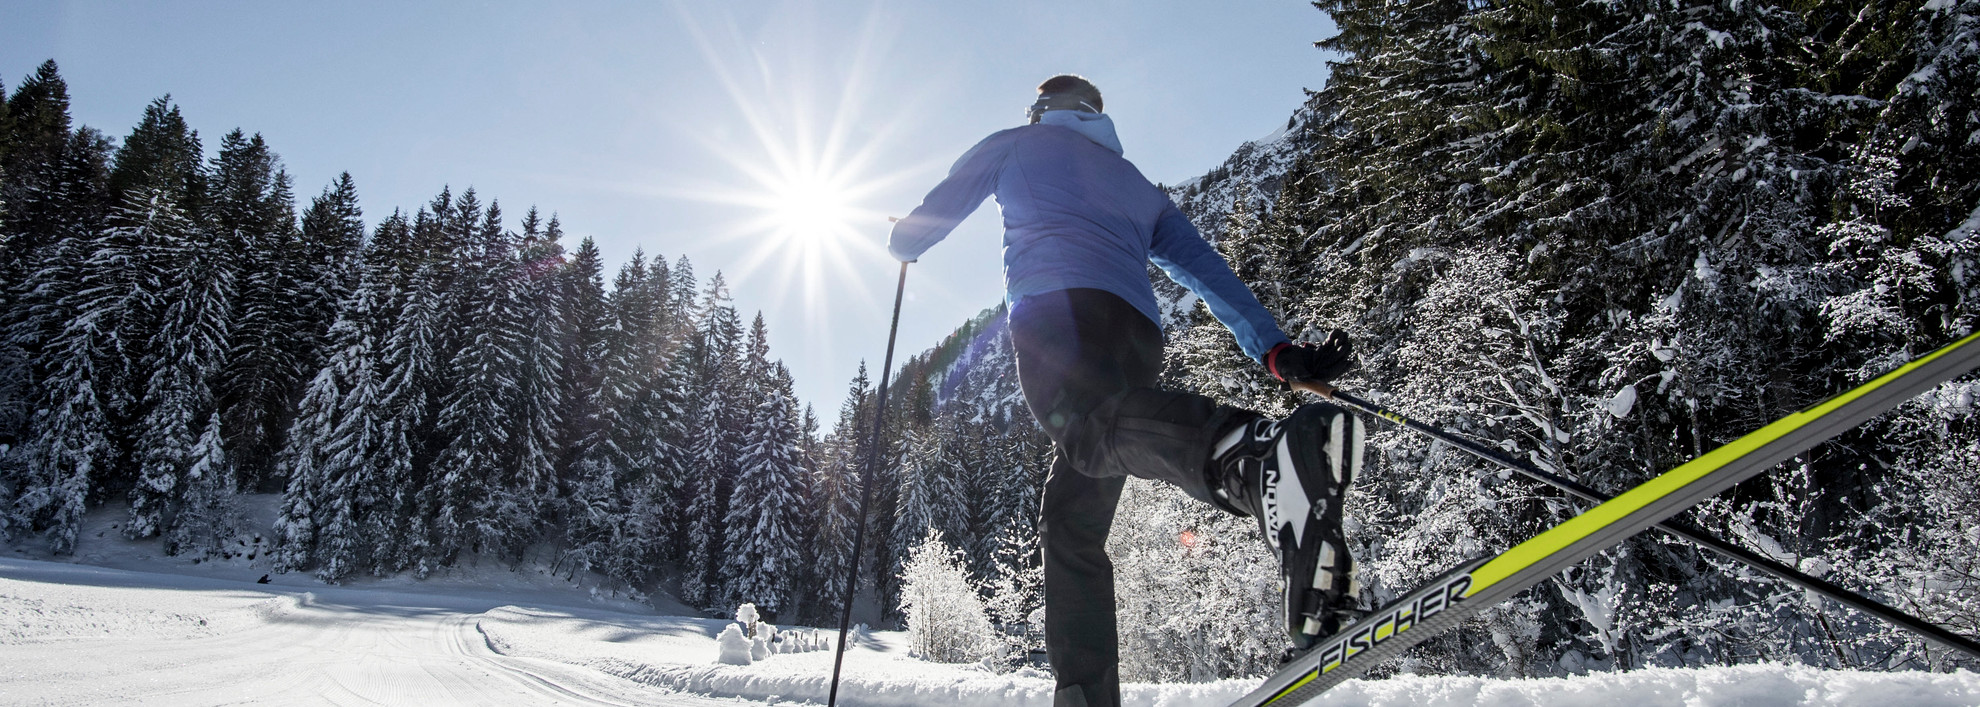 Classic cross-country skiing on the Steinbock trail | © Kleinwalsertal Tourismus eGen | Photographer: Dominik Berchtold